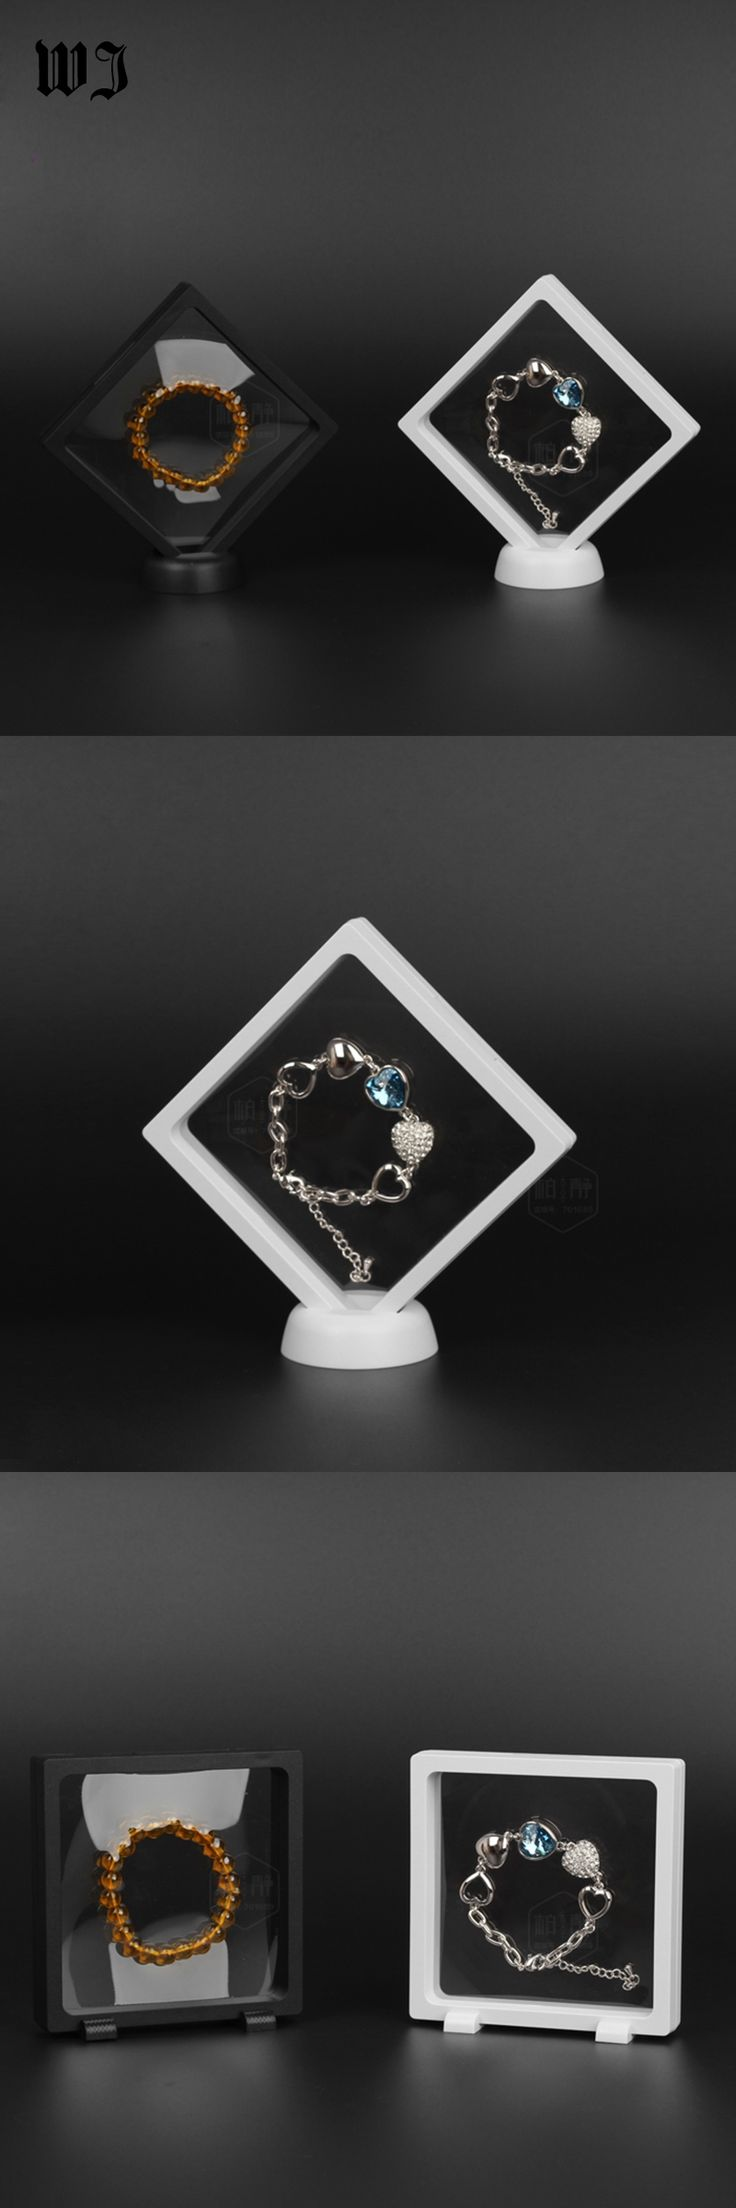 Floating Jewelry Display Case Plastic Frame Transprent Elastic Membrane For Ring Necklace Pendant Bracelet Pearl Amber 11*11cm